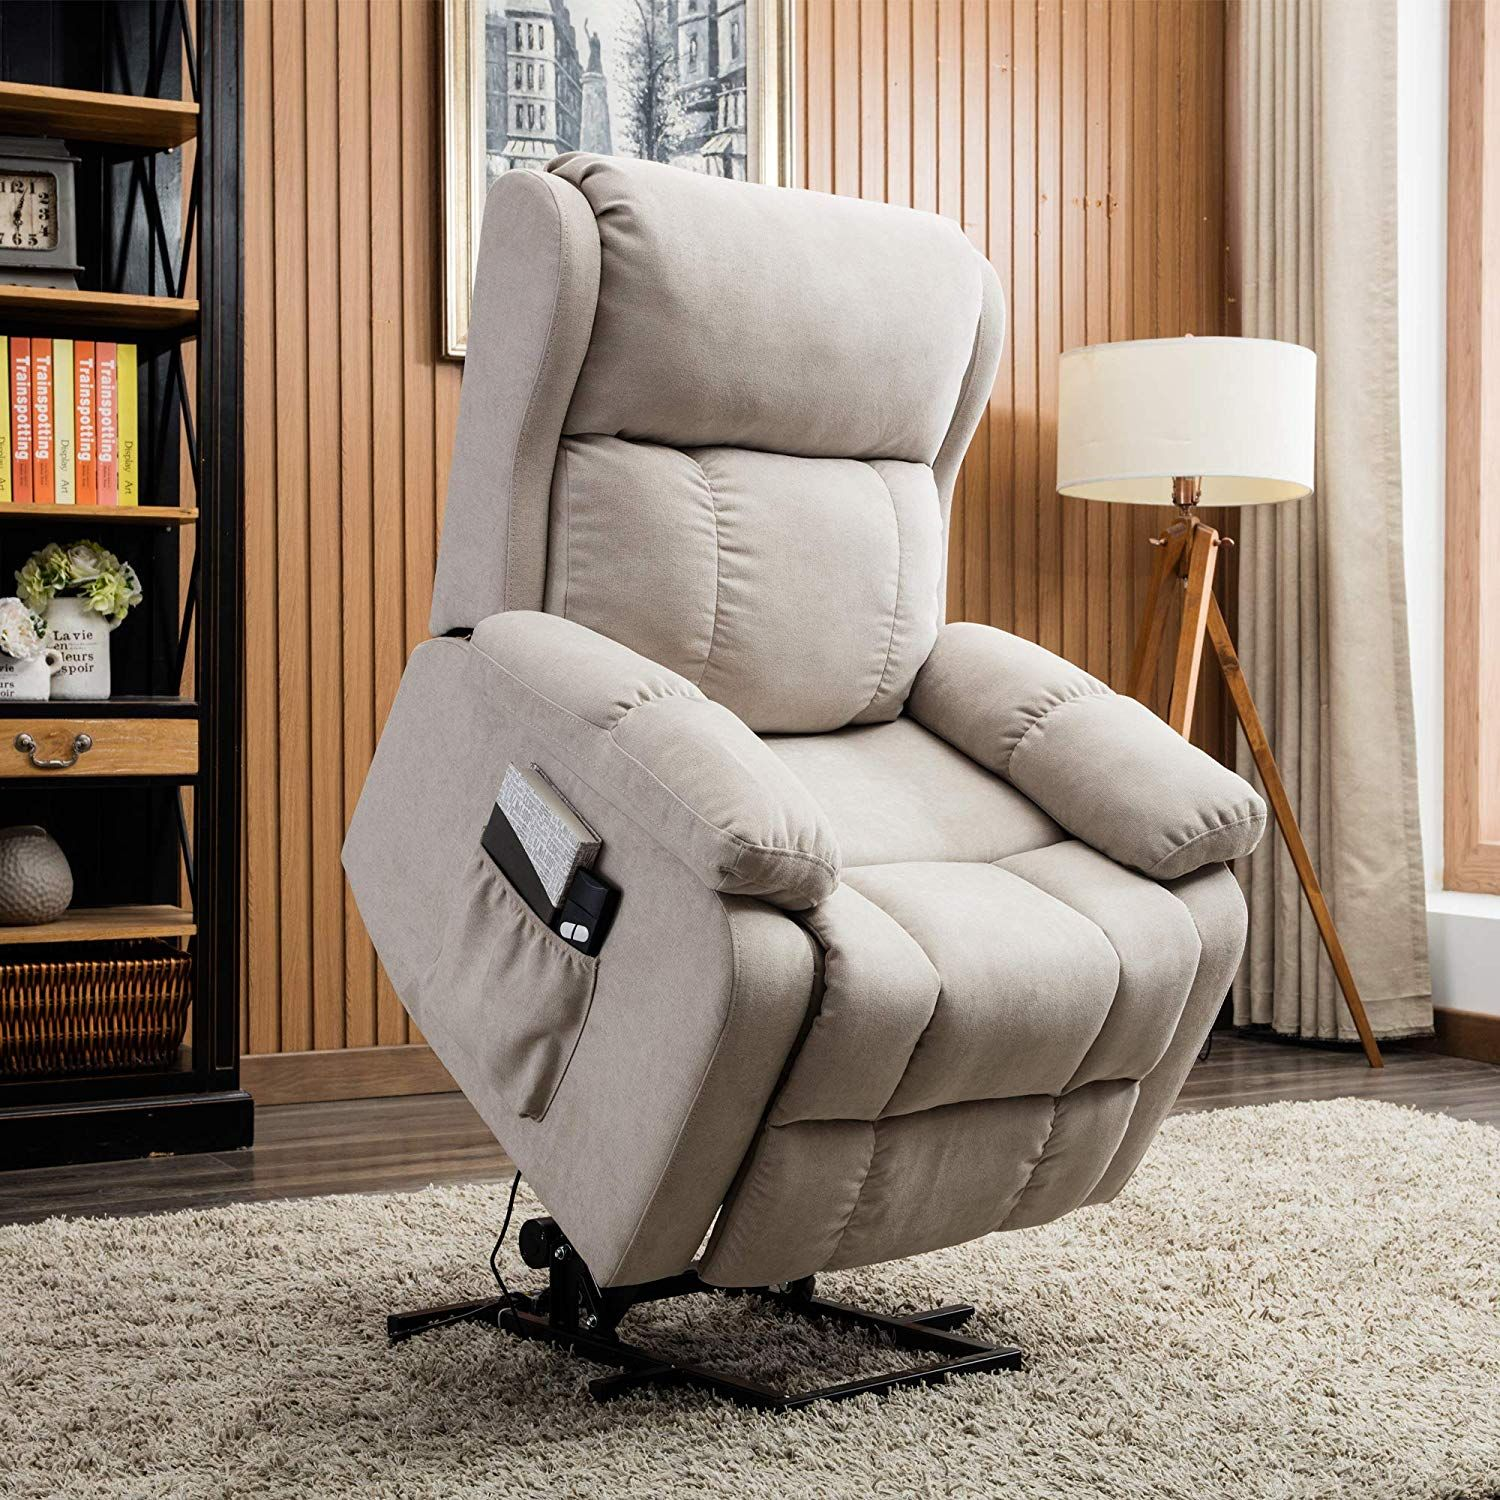 Brilliant Canmov Power Lift Recliner Chair With Remote Control Heavy Gamerscity Chair Design For Home Gamerscityorg